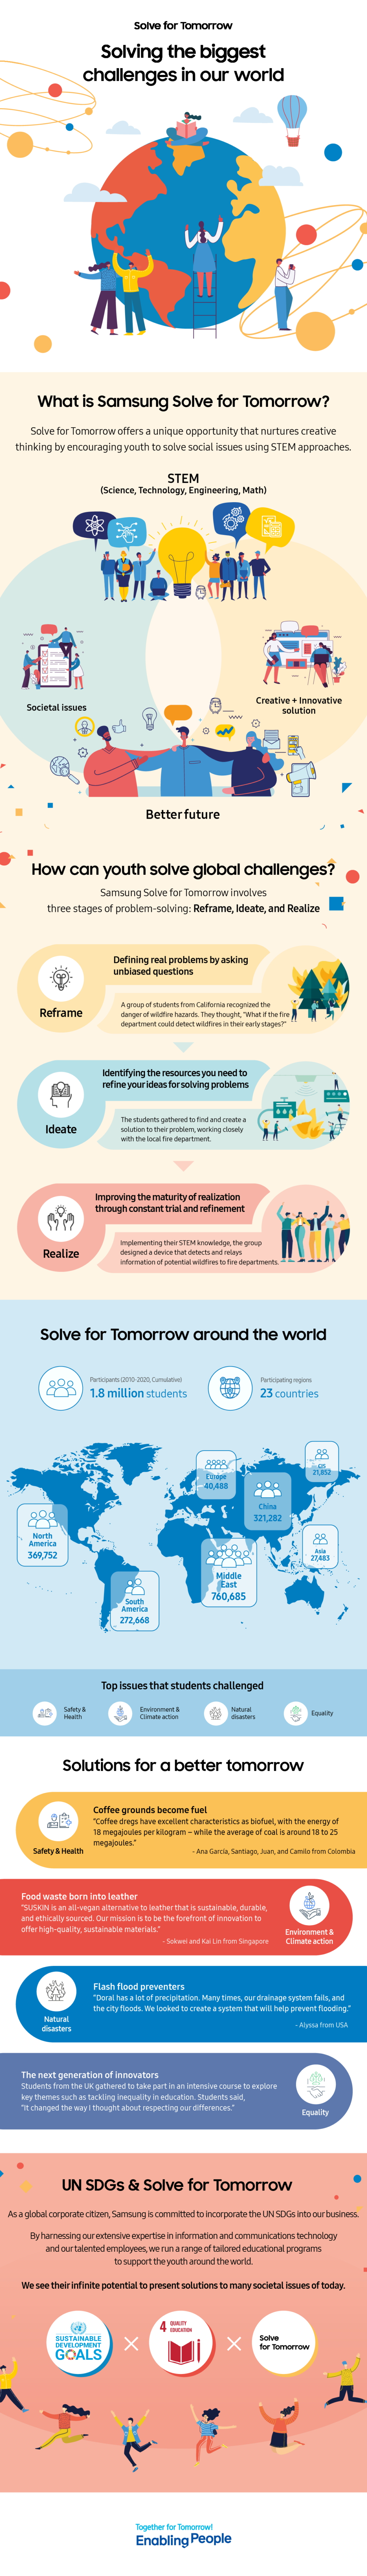 [Infographic] Samsung Solve for Tomorrow Inspires Young Minds to Become the Seeds of Change - Image 1